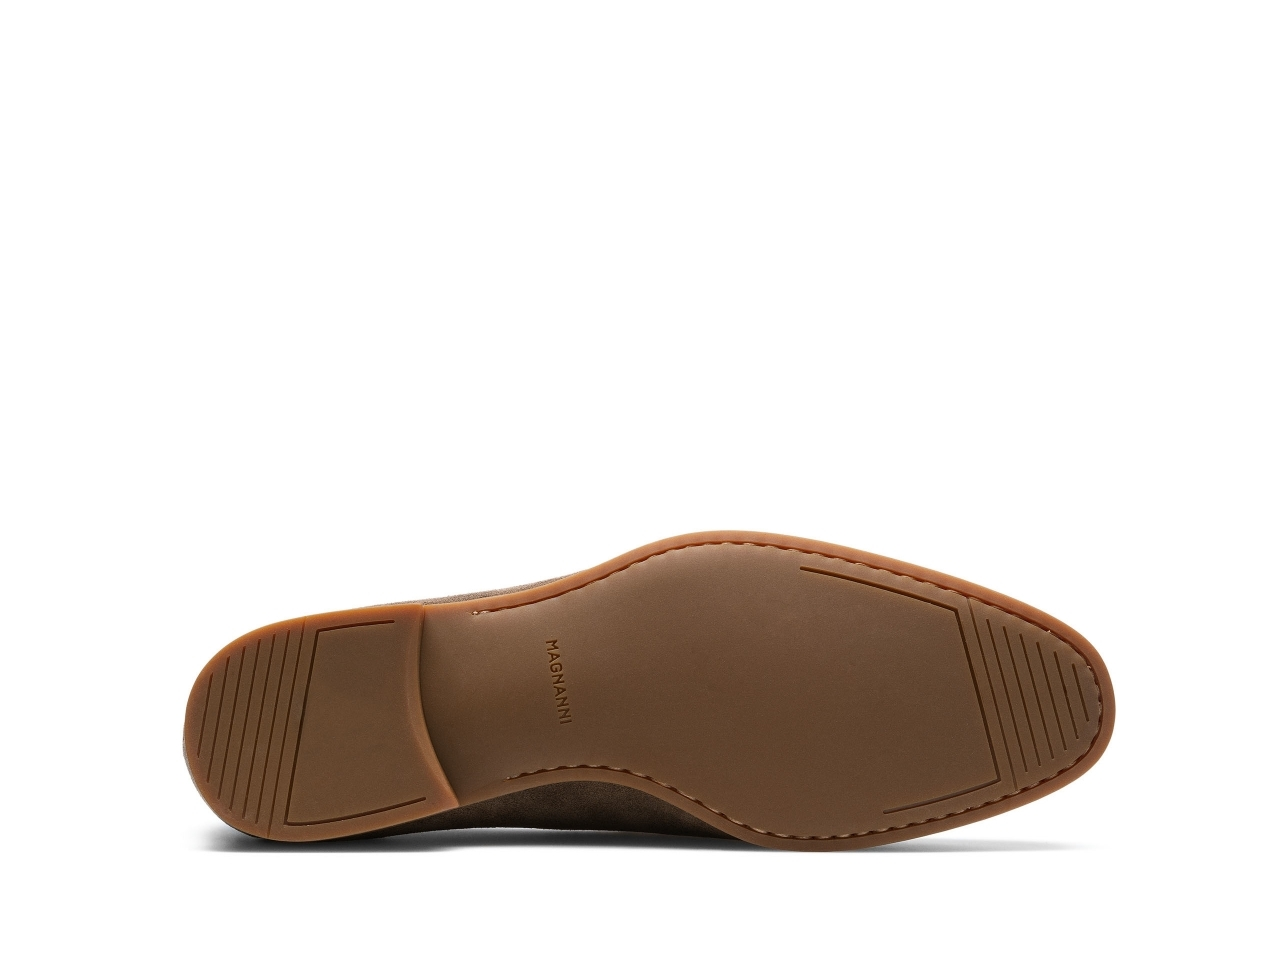 The sole of the Lécera